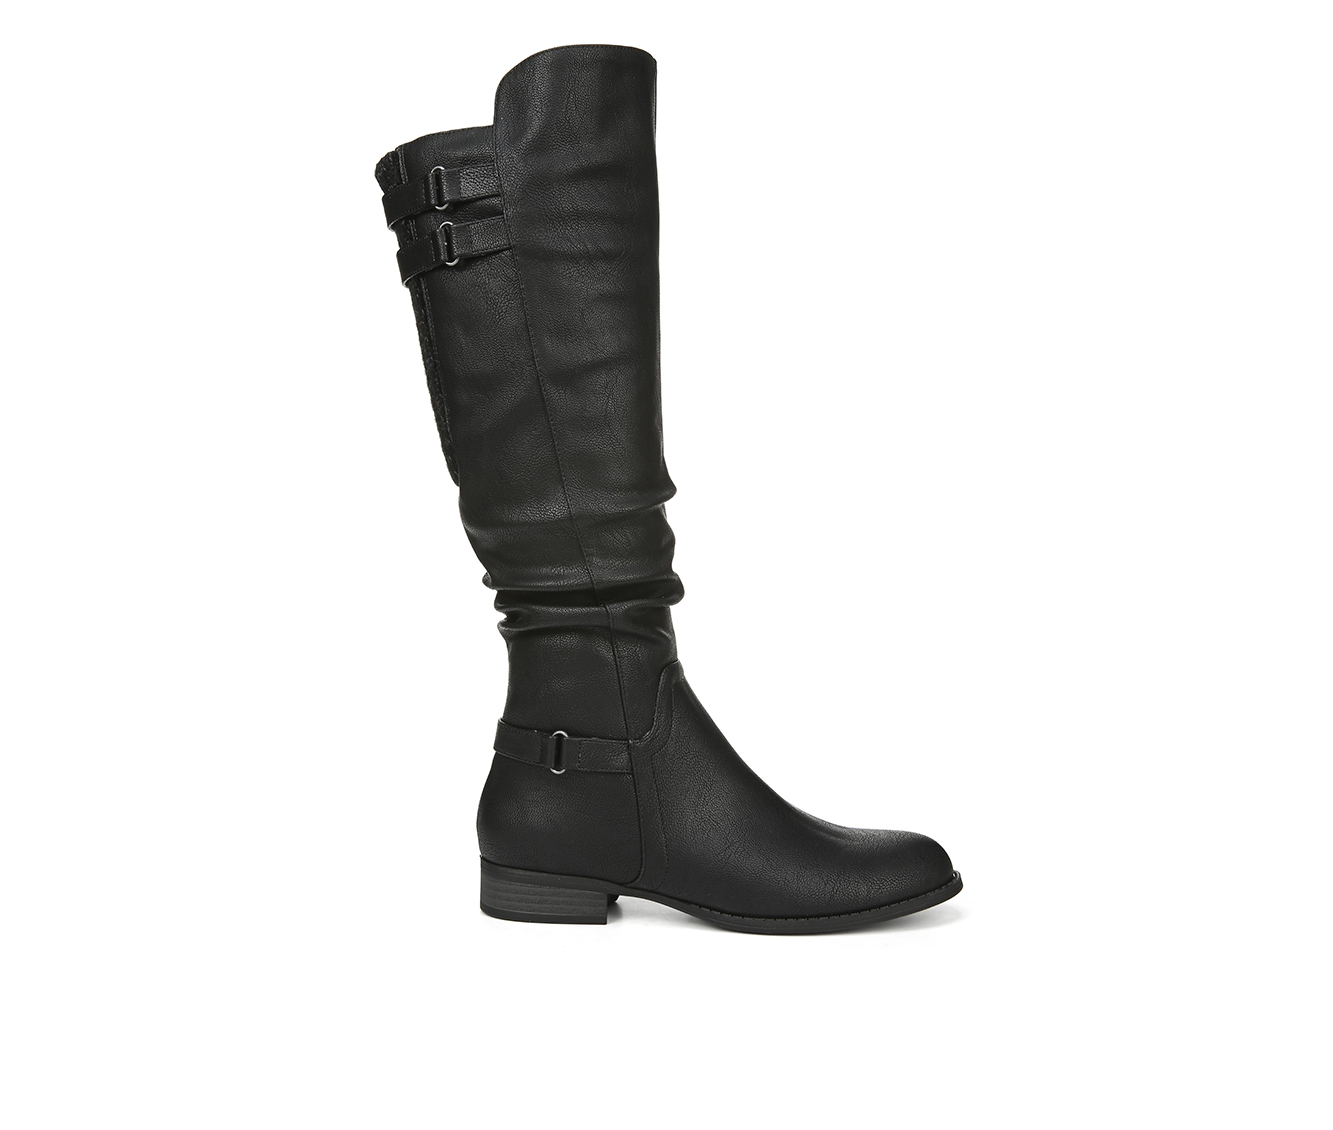 LifeStride Faunia Women's Boot (Black Faux Leather)